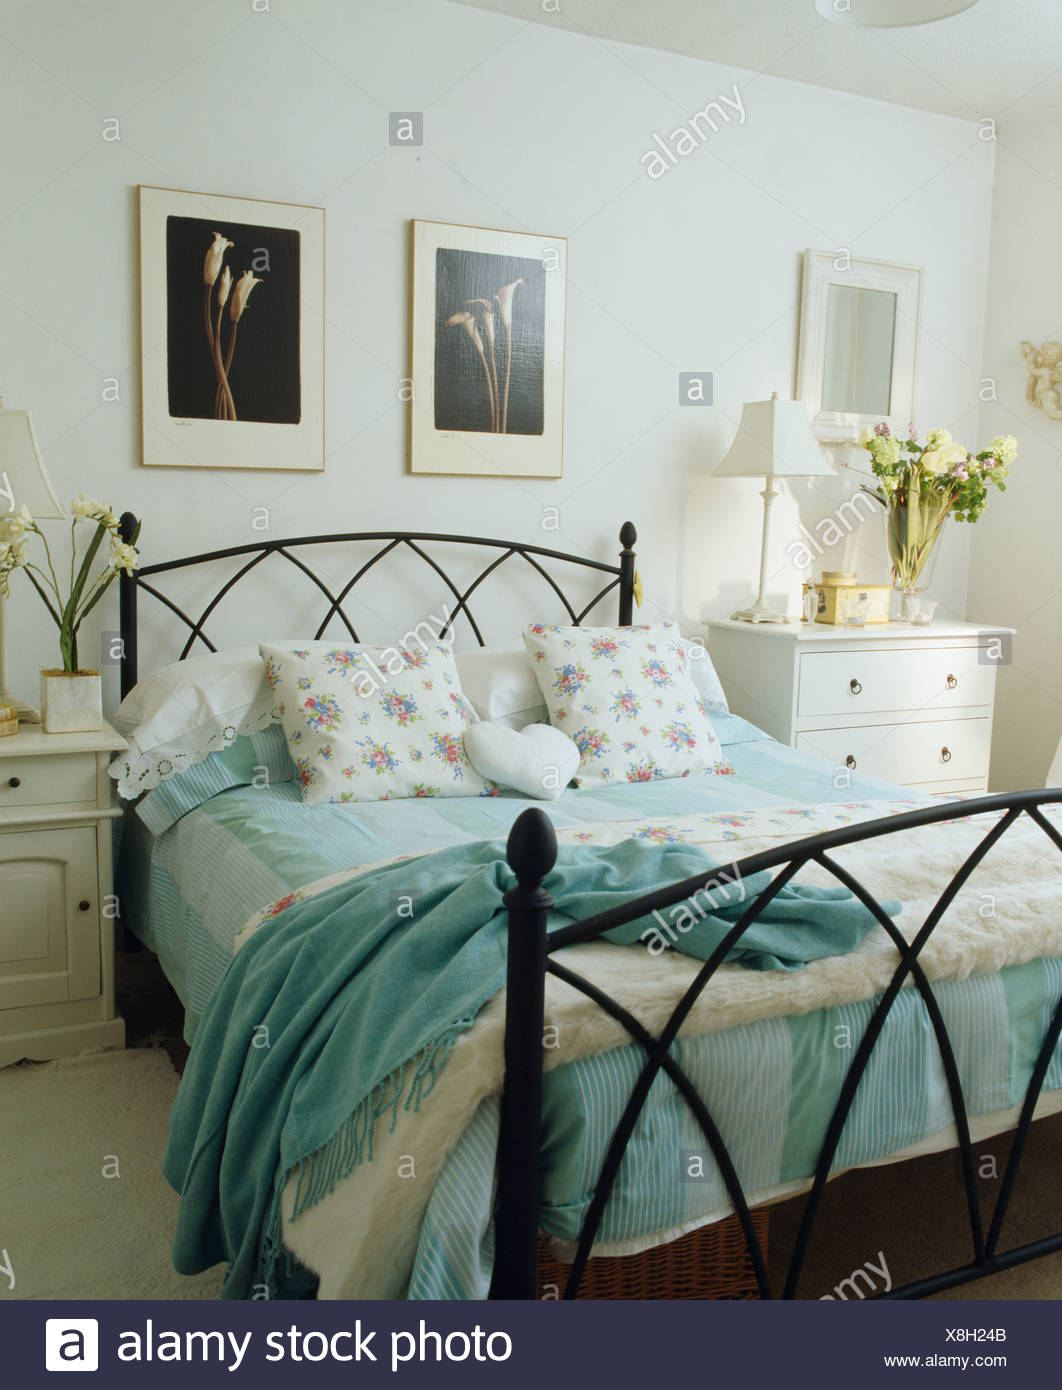 turquoise wool throw on wrought iron bed with turquoise striped rh alamy com